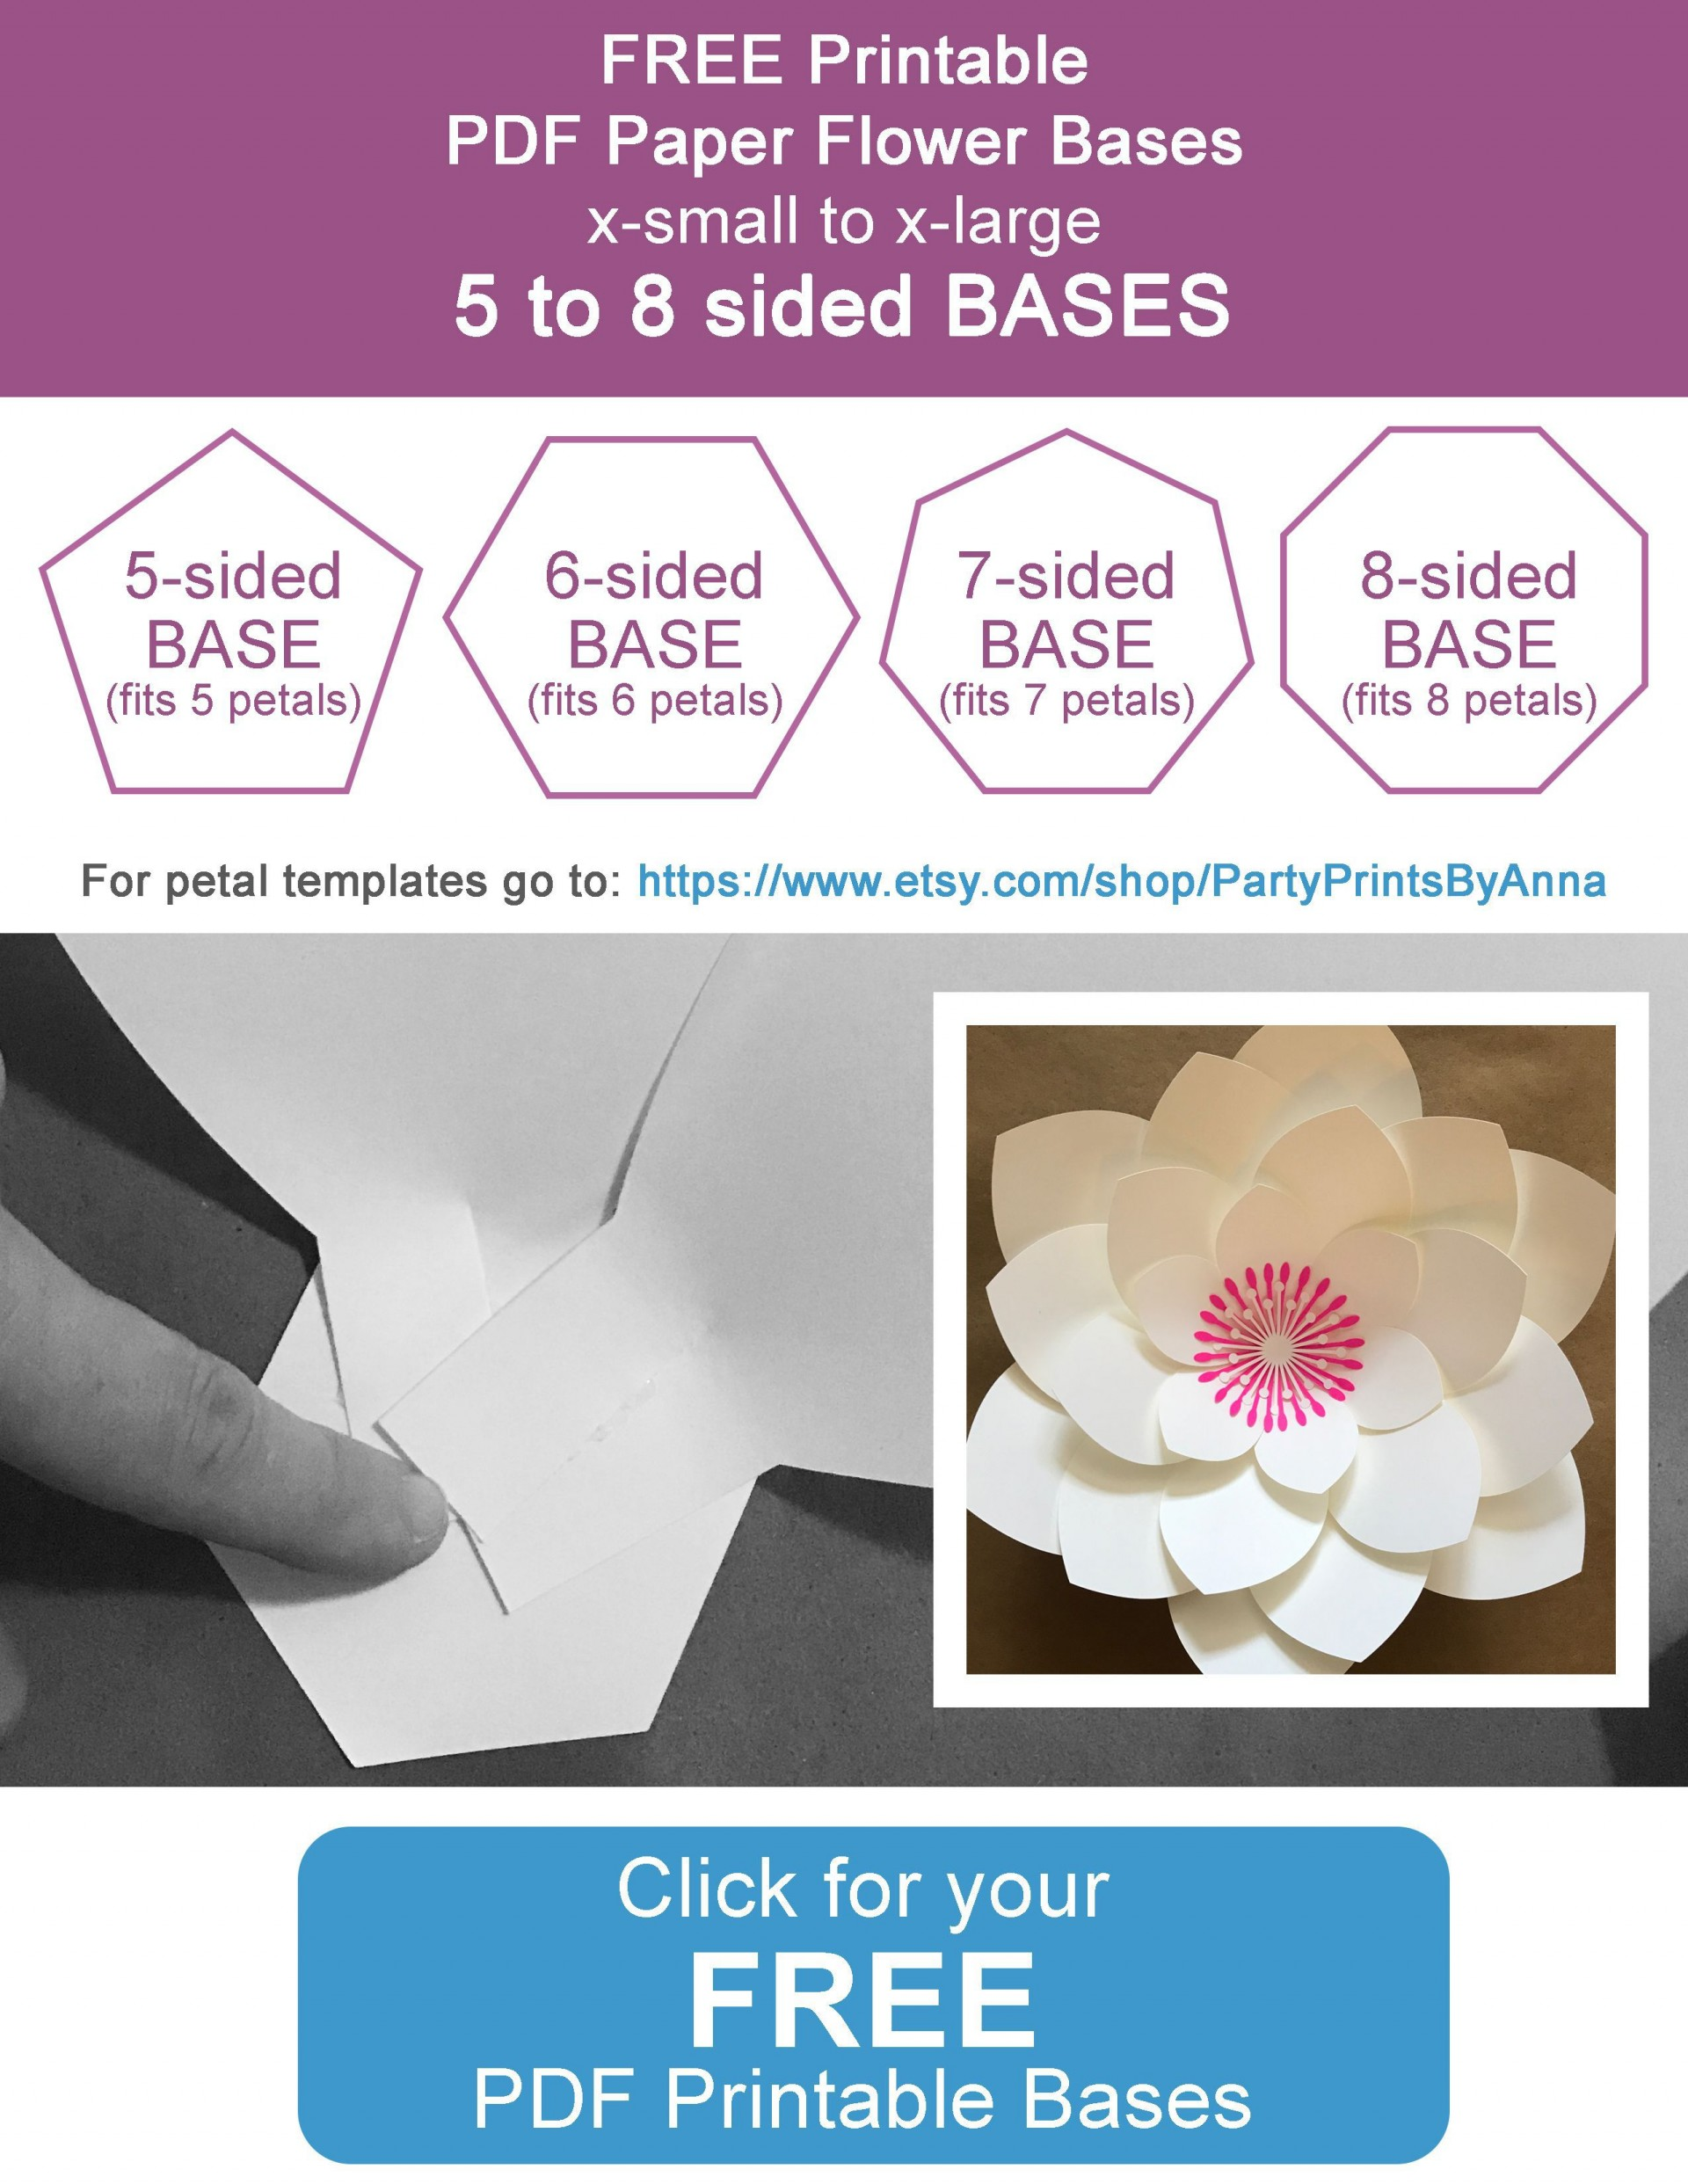 004 Awful Paper Rose Template Pdf Sample  Flower Giant Free Crepe1920